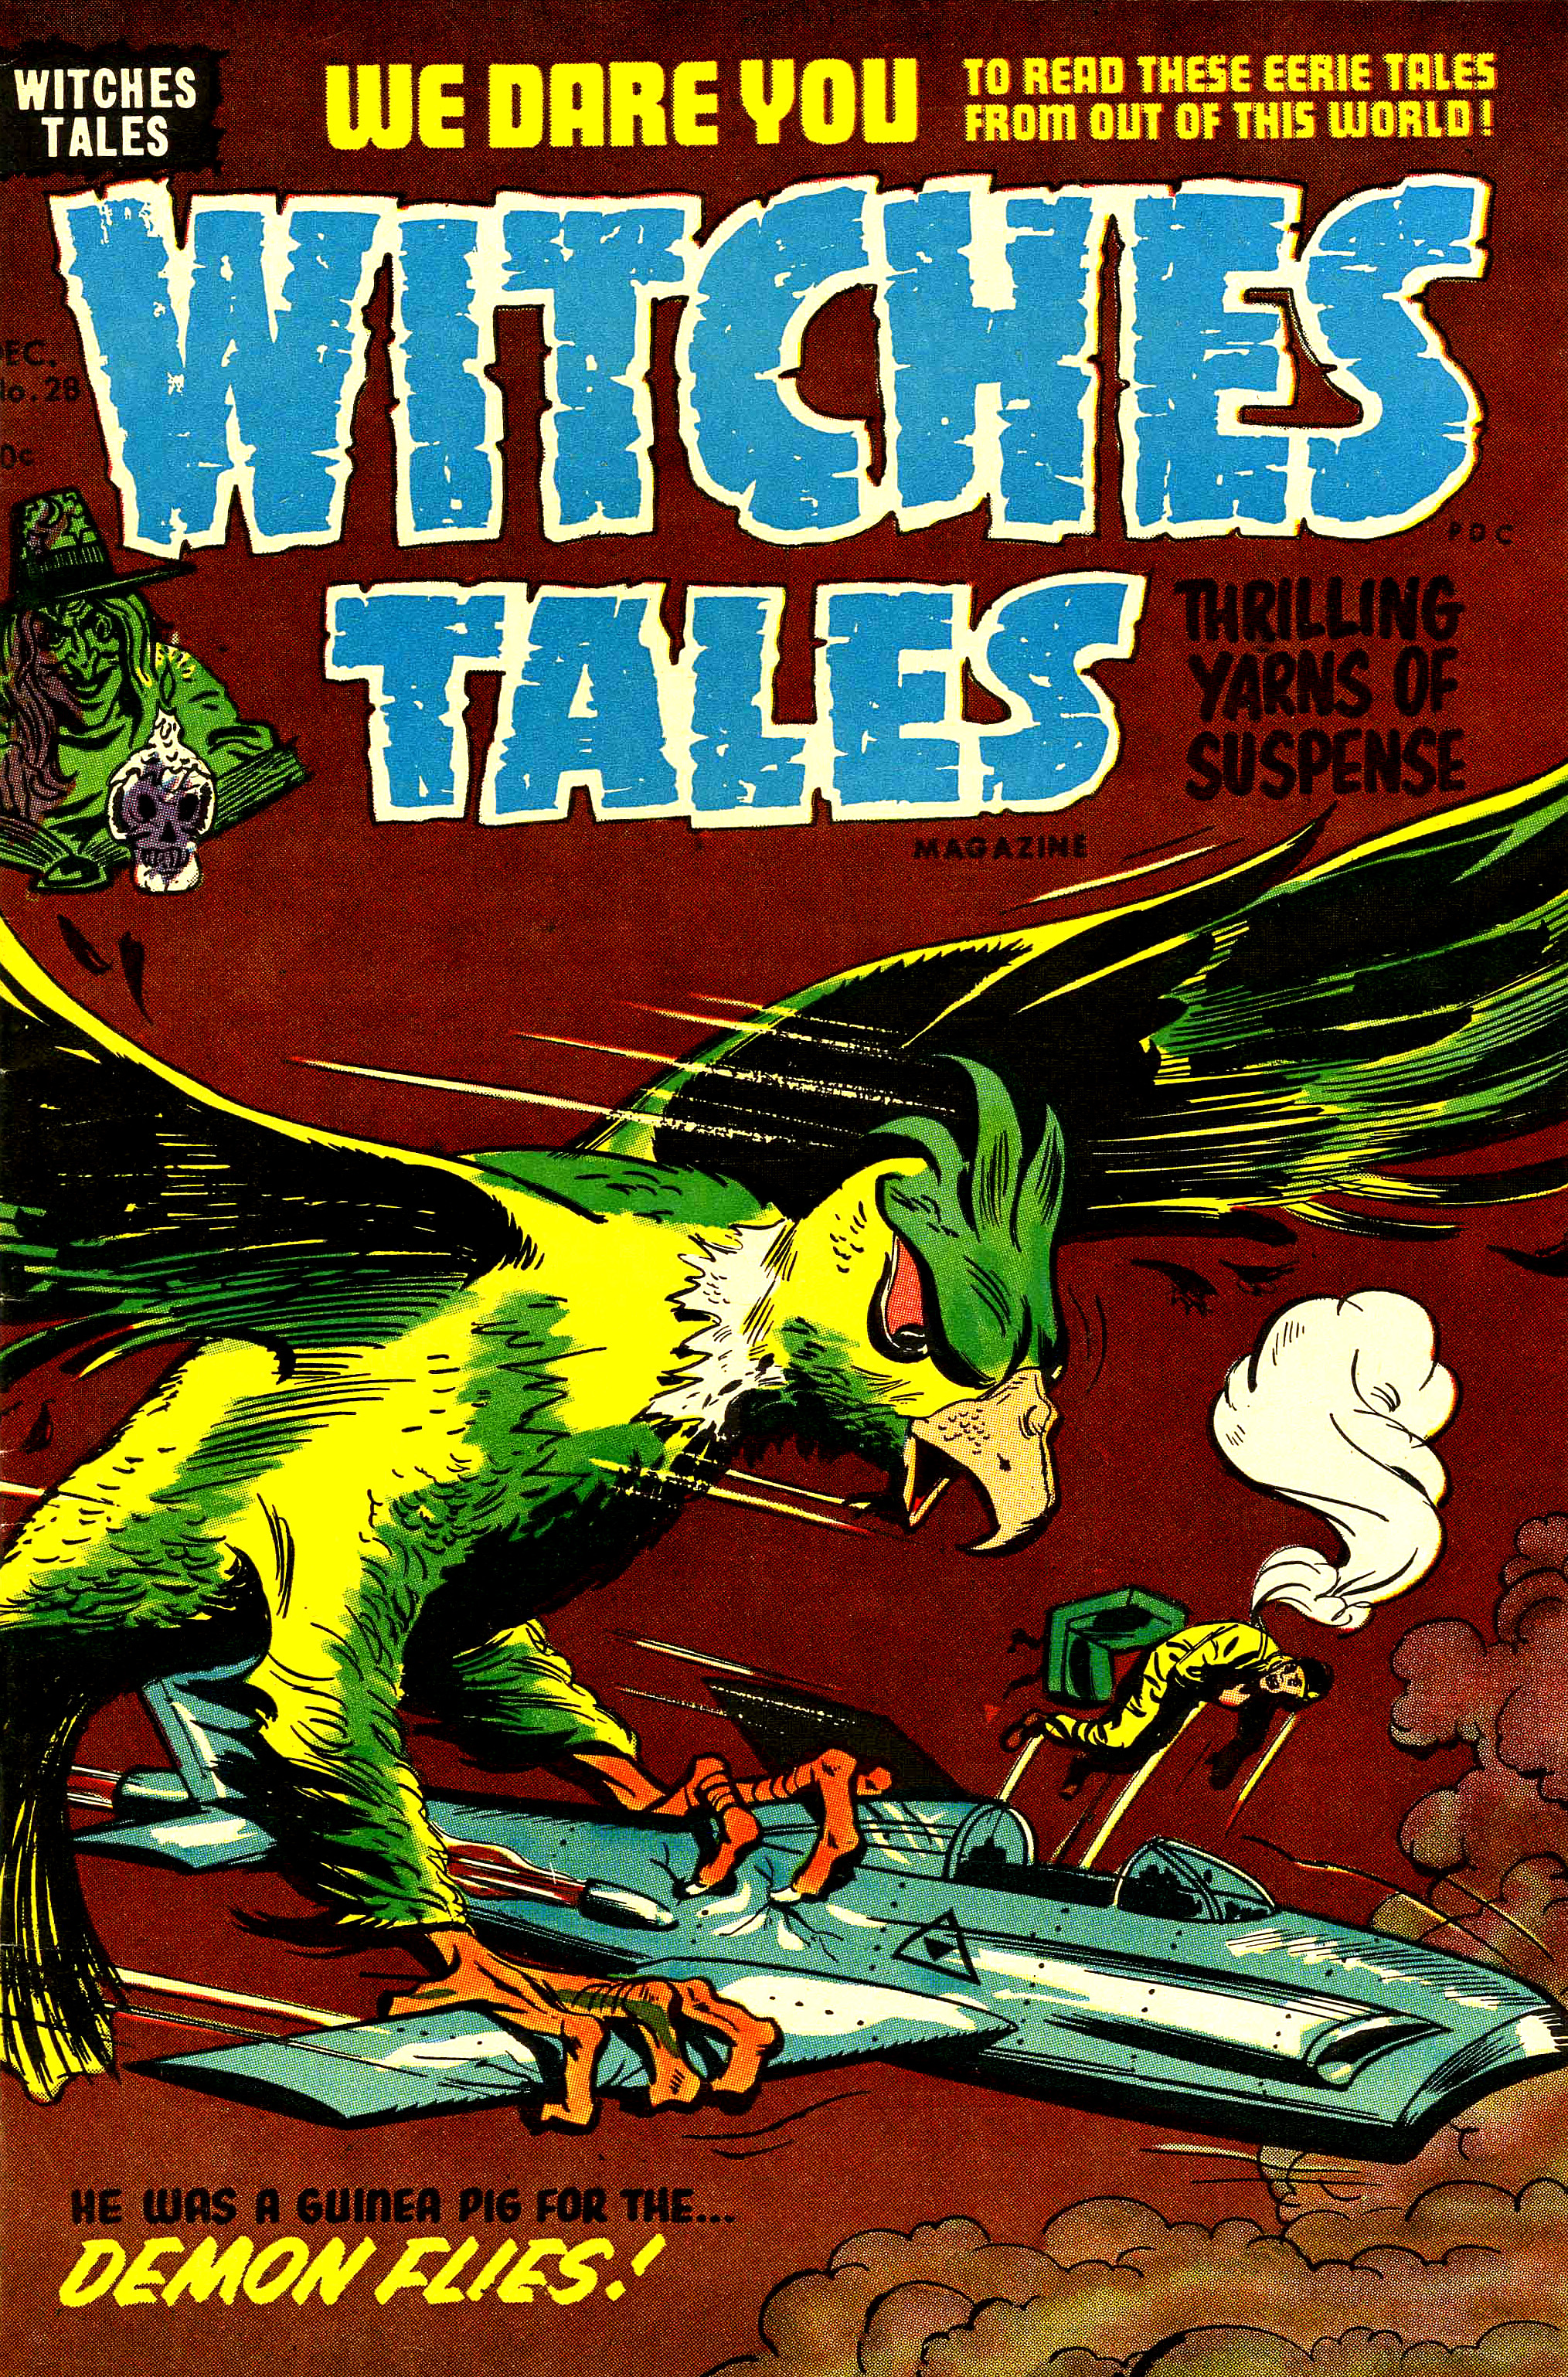 Witches Tales #28, Al Avison Cover (Harvey, 1954)